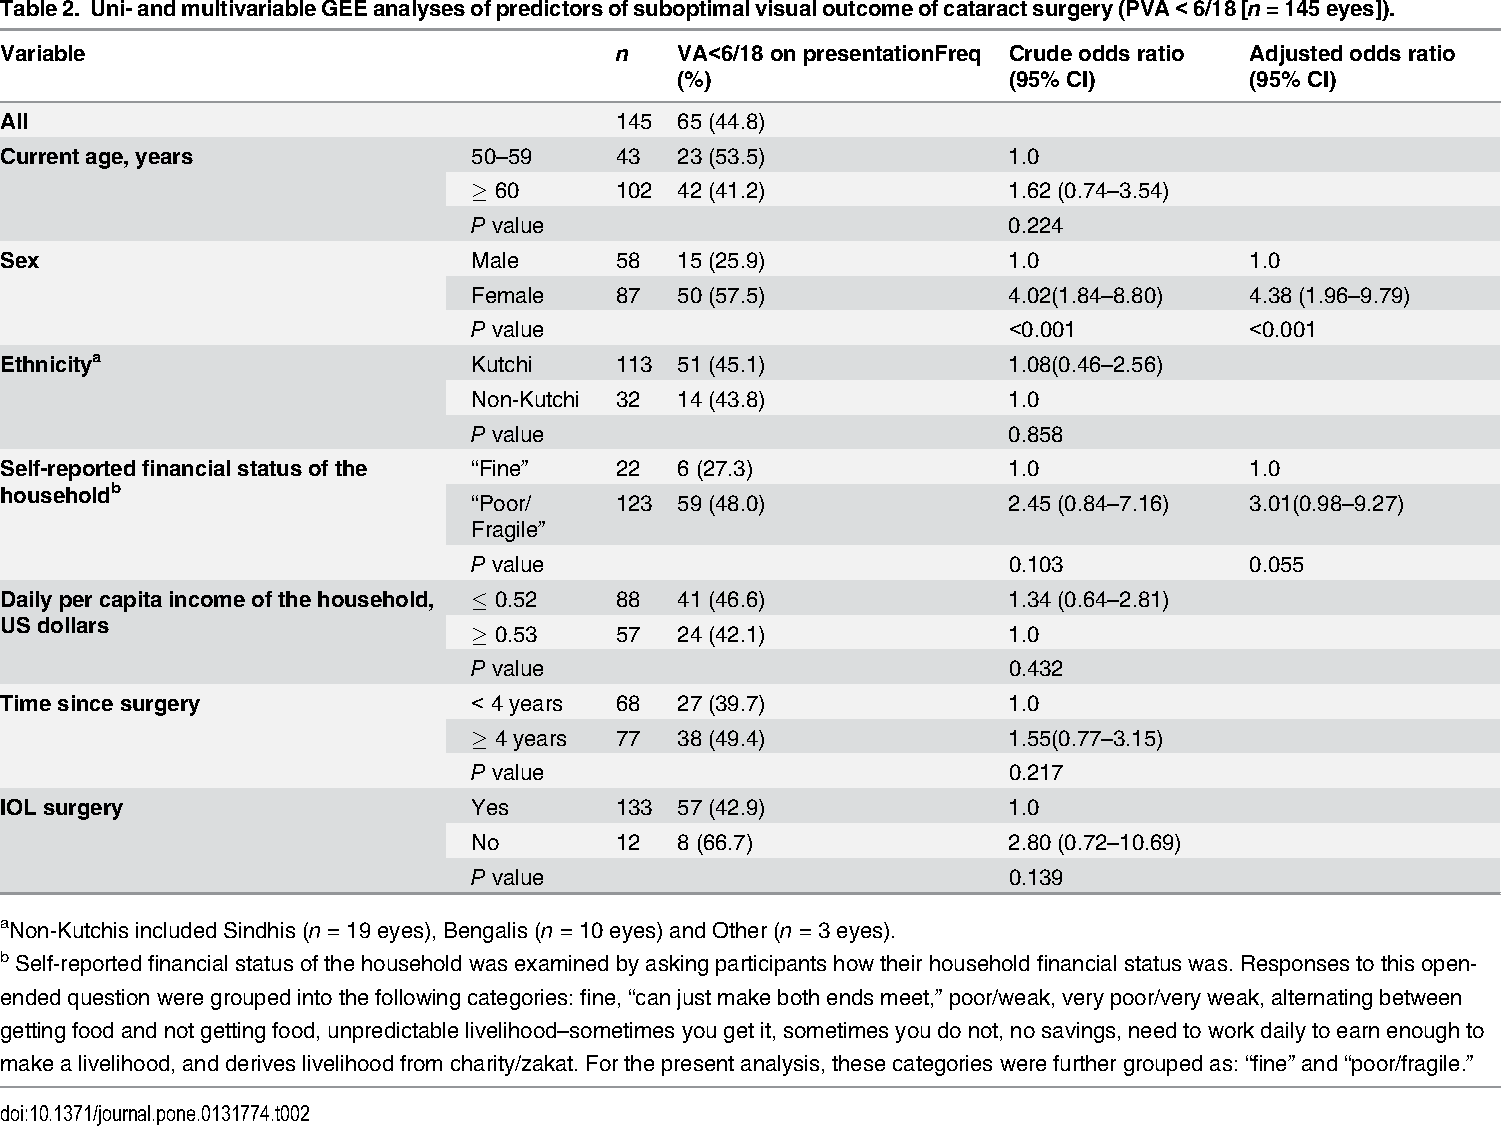 Table 2 from Gendered Disparities in Quality of Cataract Surgery in